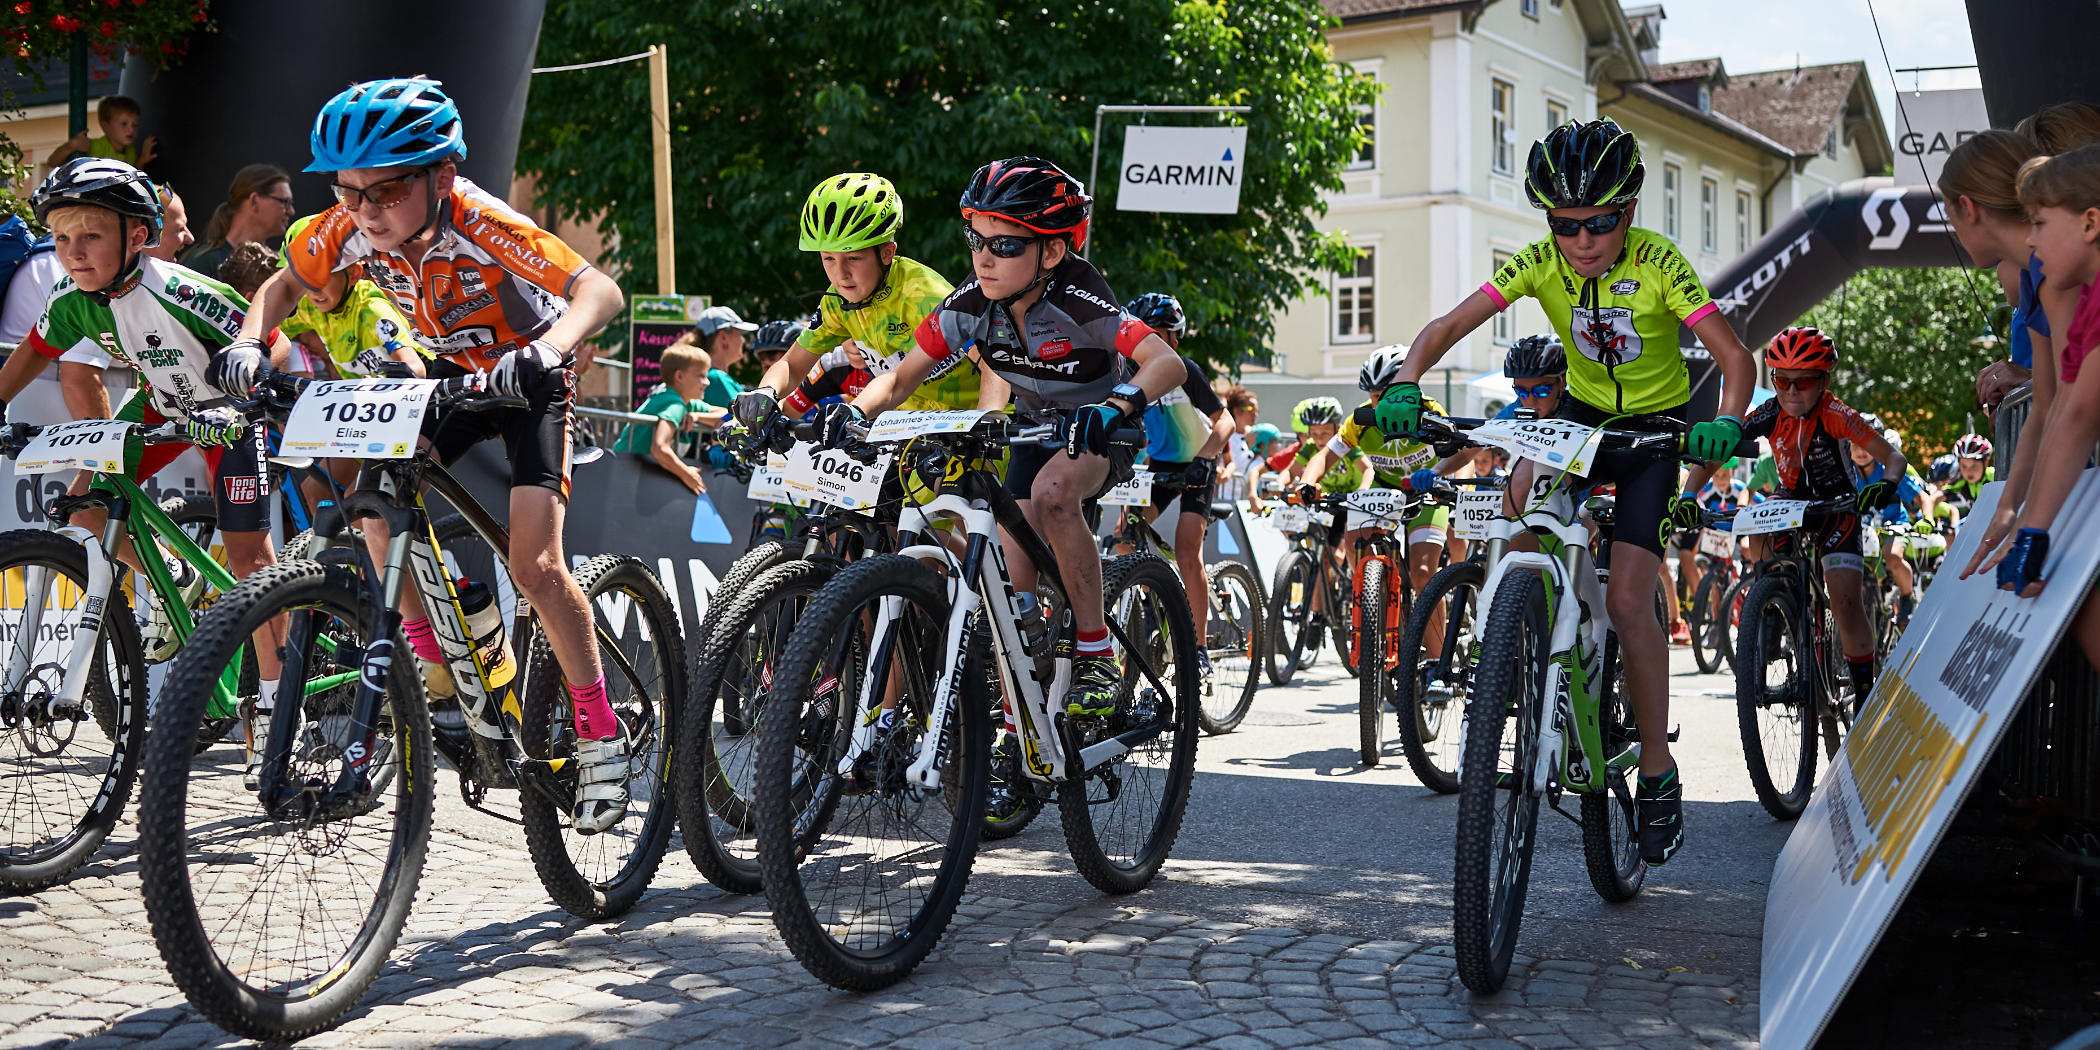 Salzkammergut Mountainbike Trophy - Junior Trophy Start (Foto: Martin Bihounek)